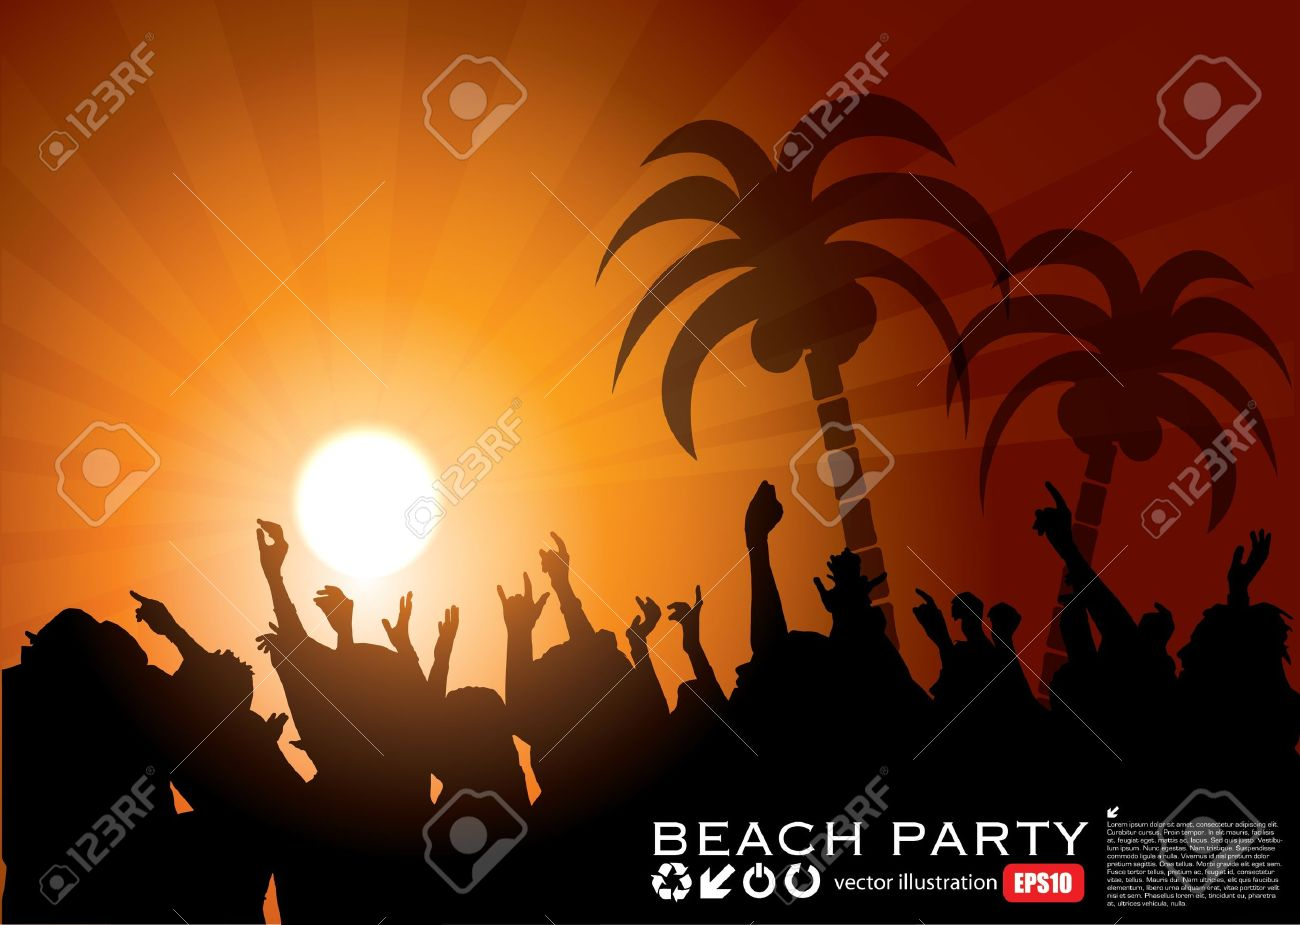 Summer Beach Party Background Stock Vector - 15280282